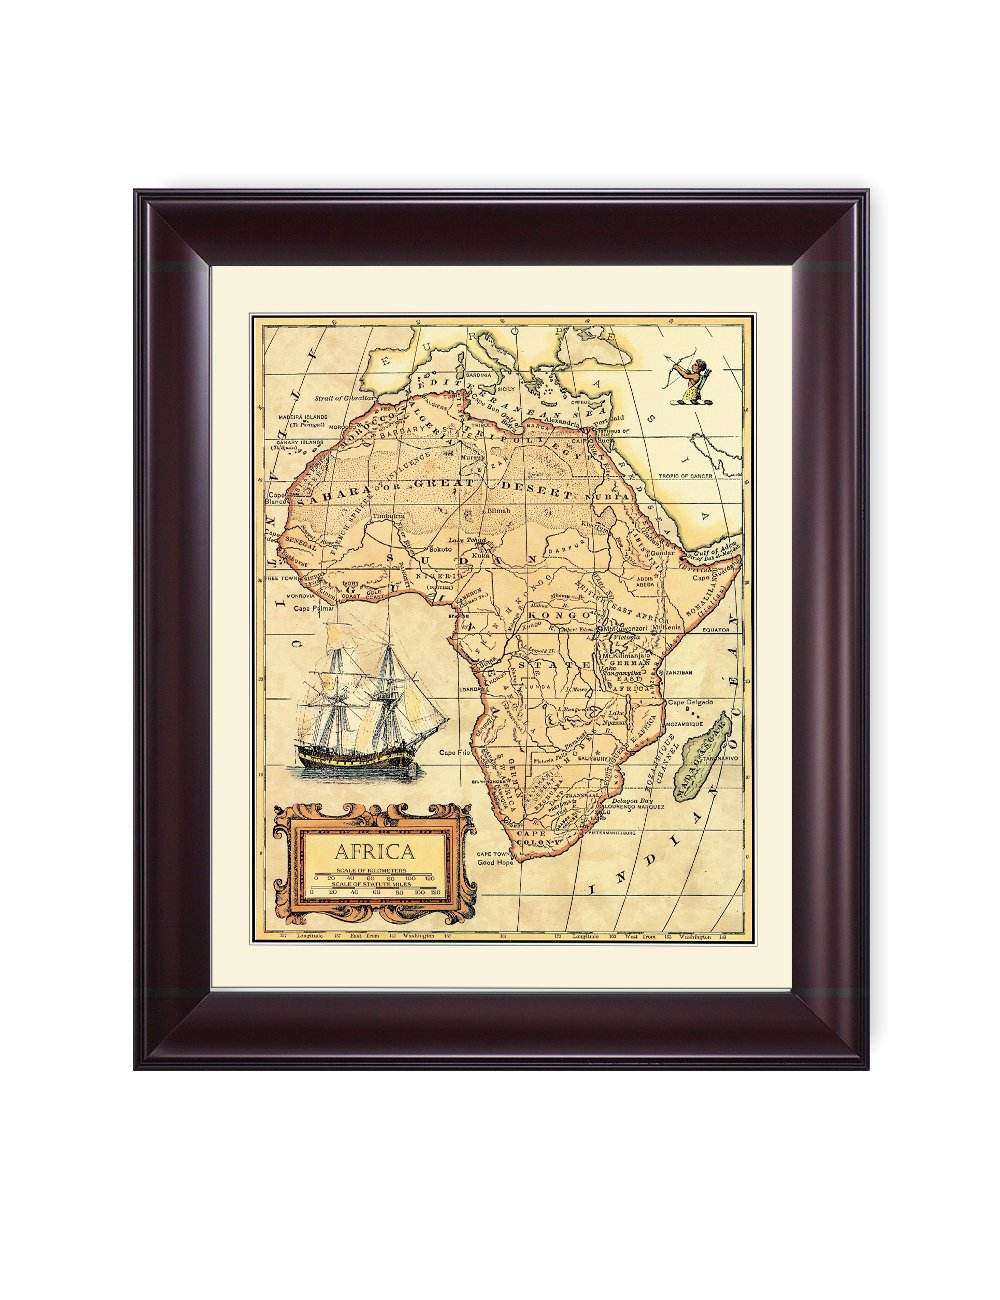 Amazon.com: DecorArts- Africa map, Ancient Map Giclee Print wall art ...